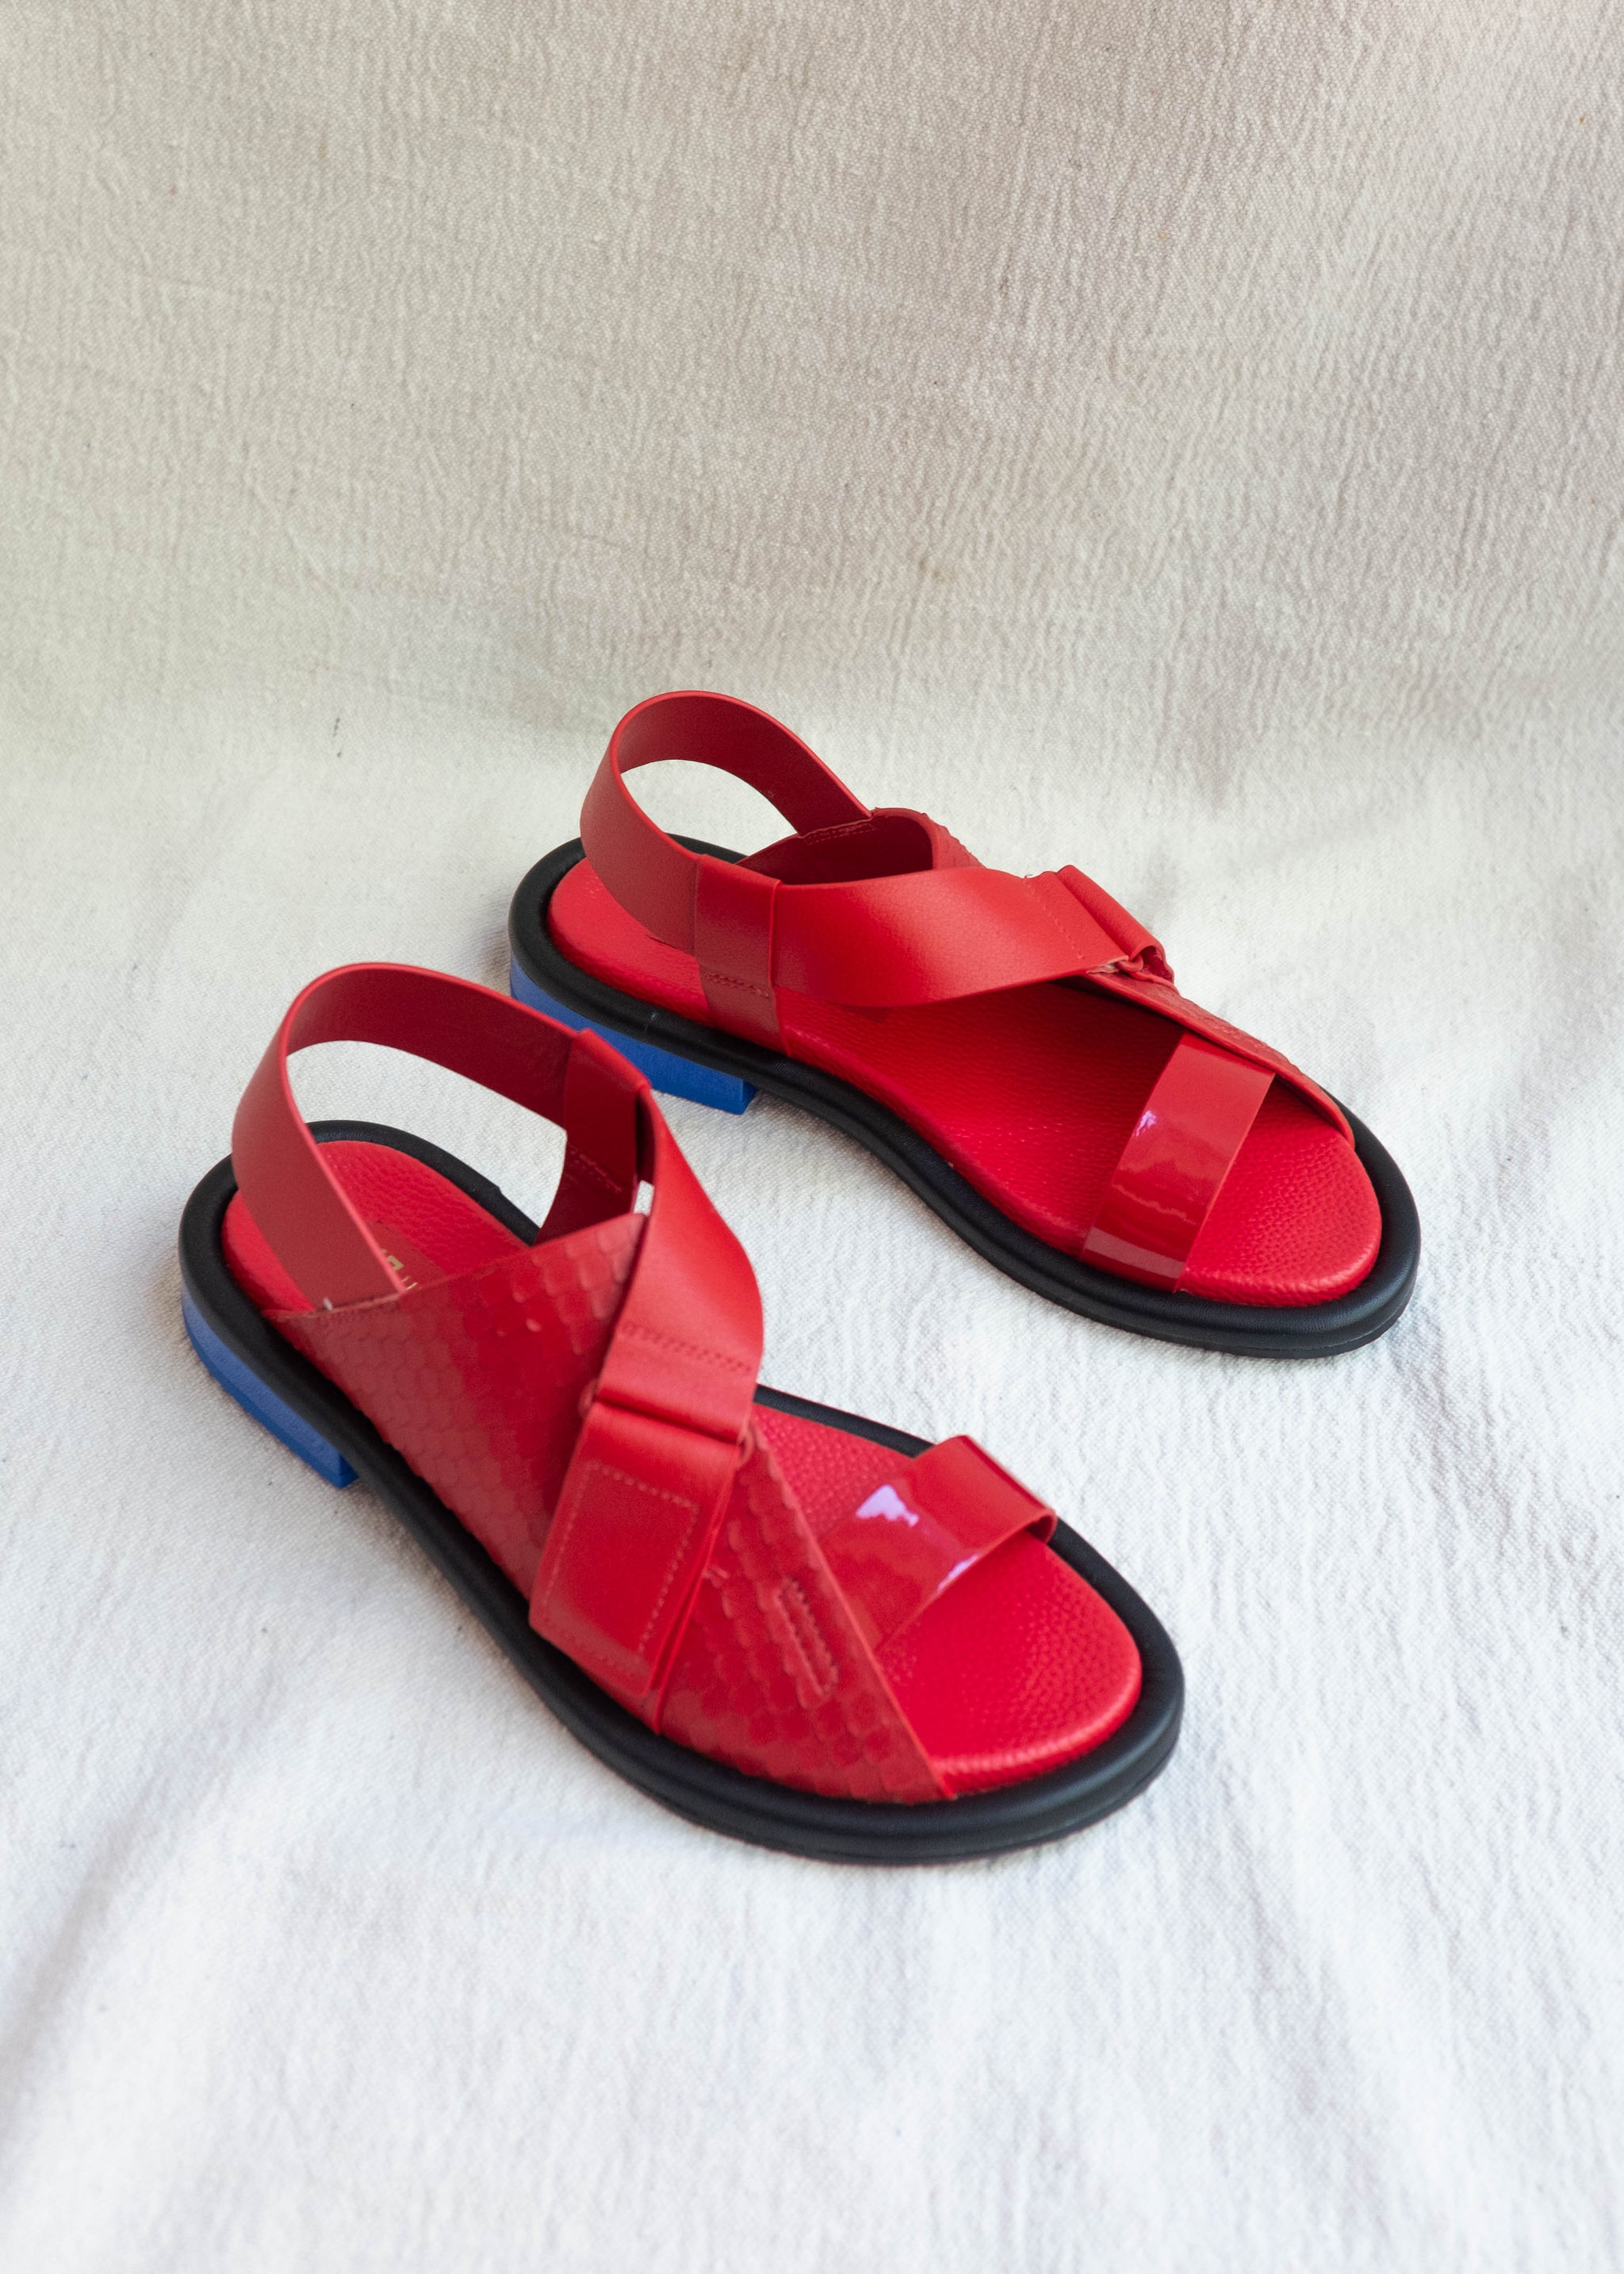 Overheard view of flame red strapy sandal , wrap around strap